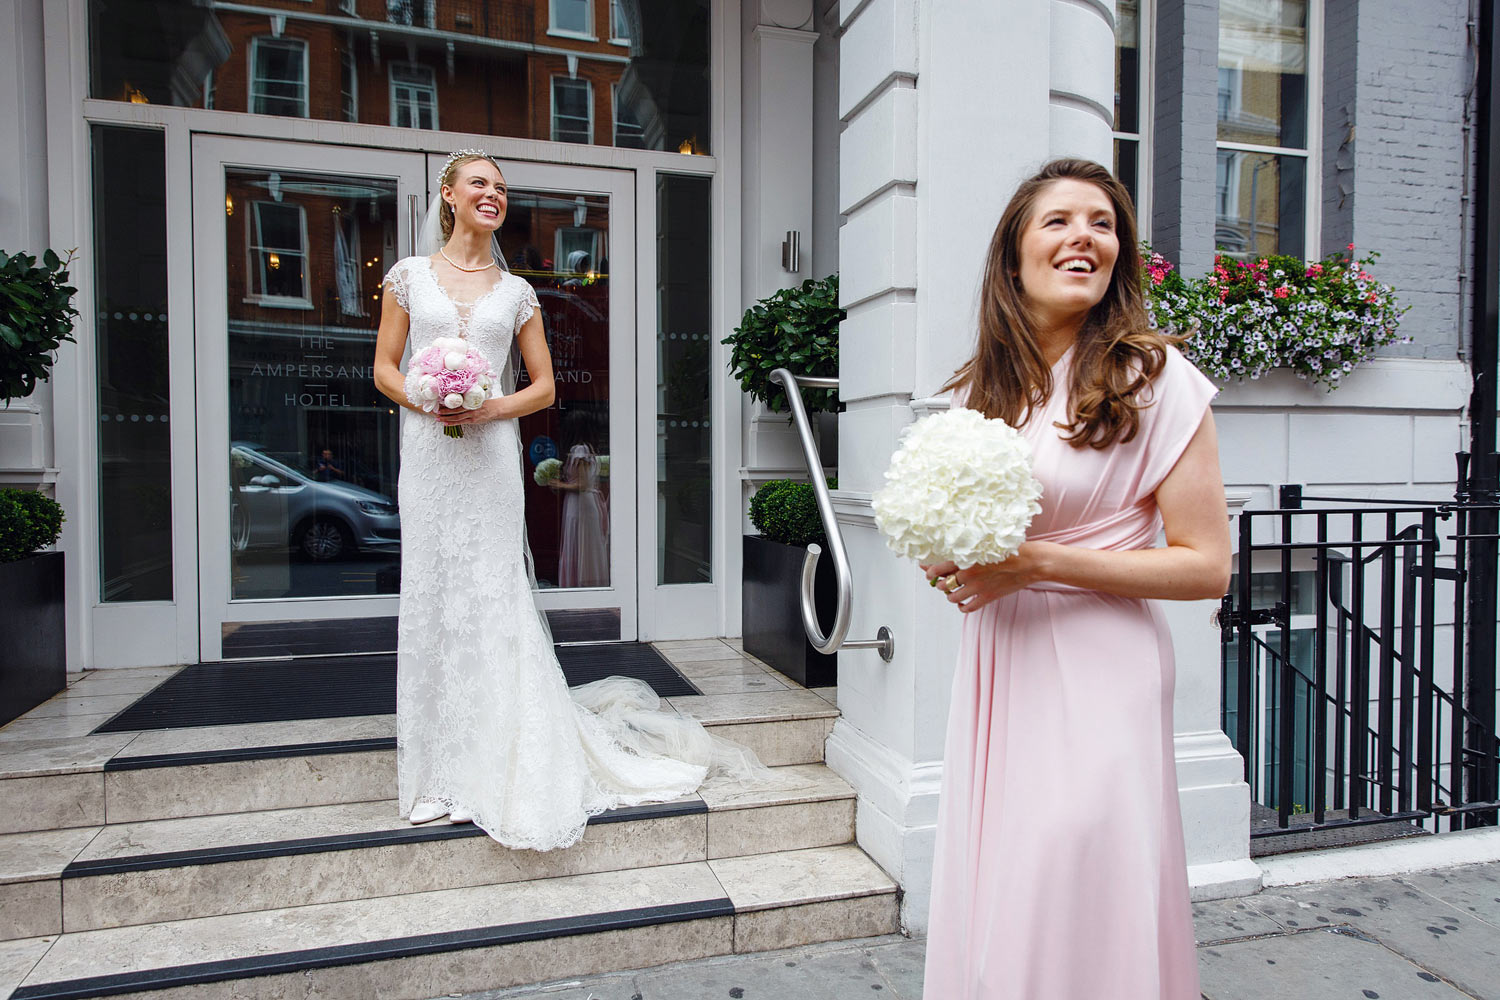 Passersby on a bus applaud the bride on the steps of the Ampersand Hotel - London wedding photographer